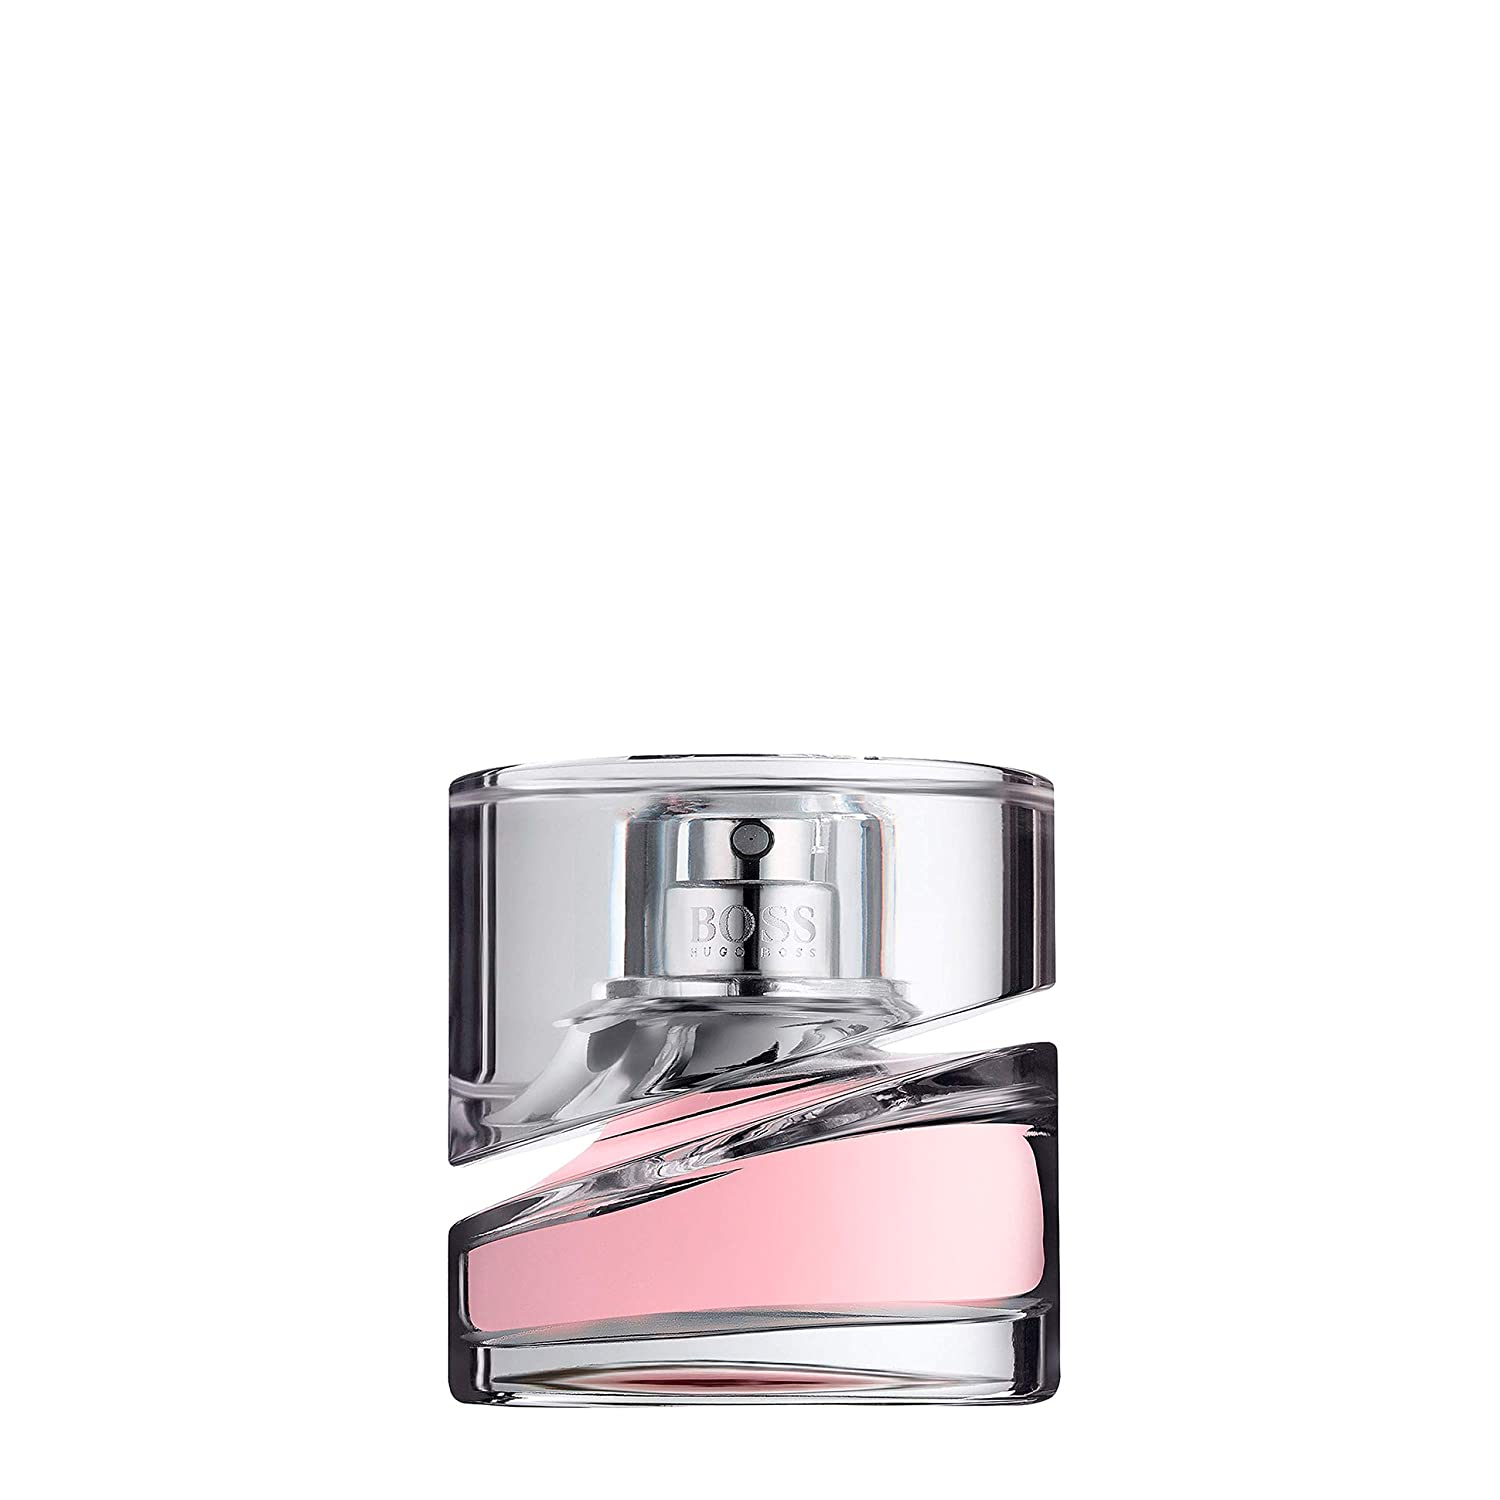 Hugo Boss Femme Eau de Parfum Spray for Women, 1 oz